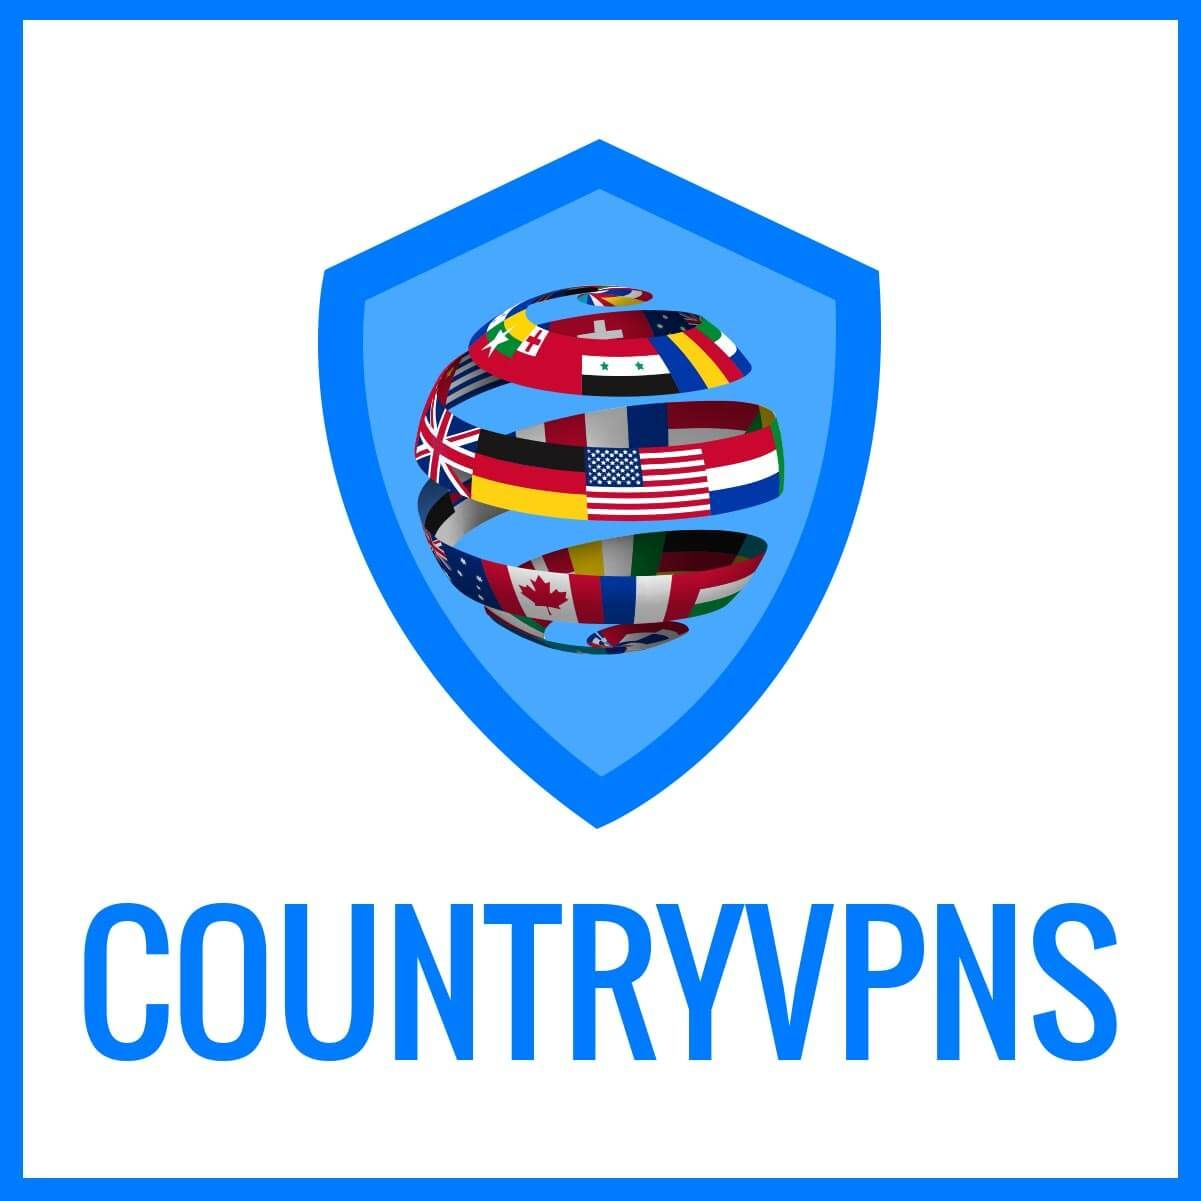 f0f264eedd0aab65d0c4a2eefb9fbf01 - What Is The Best Country To Use A Vpn